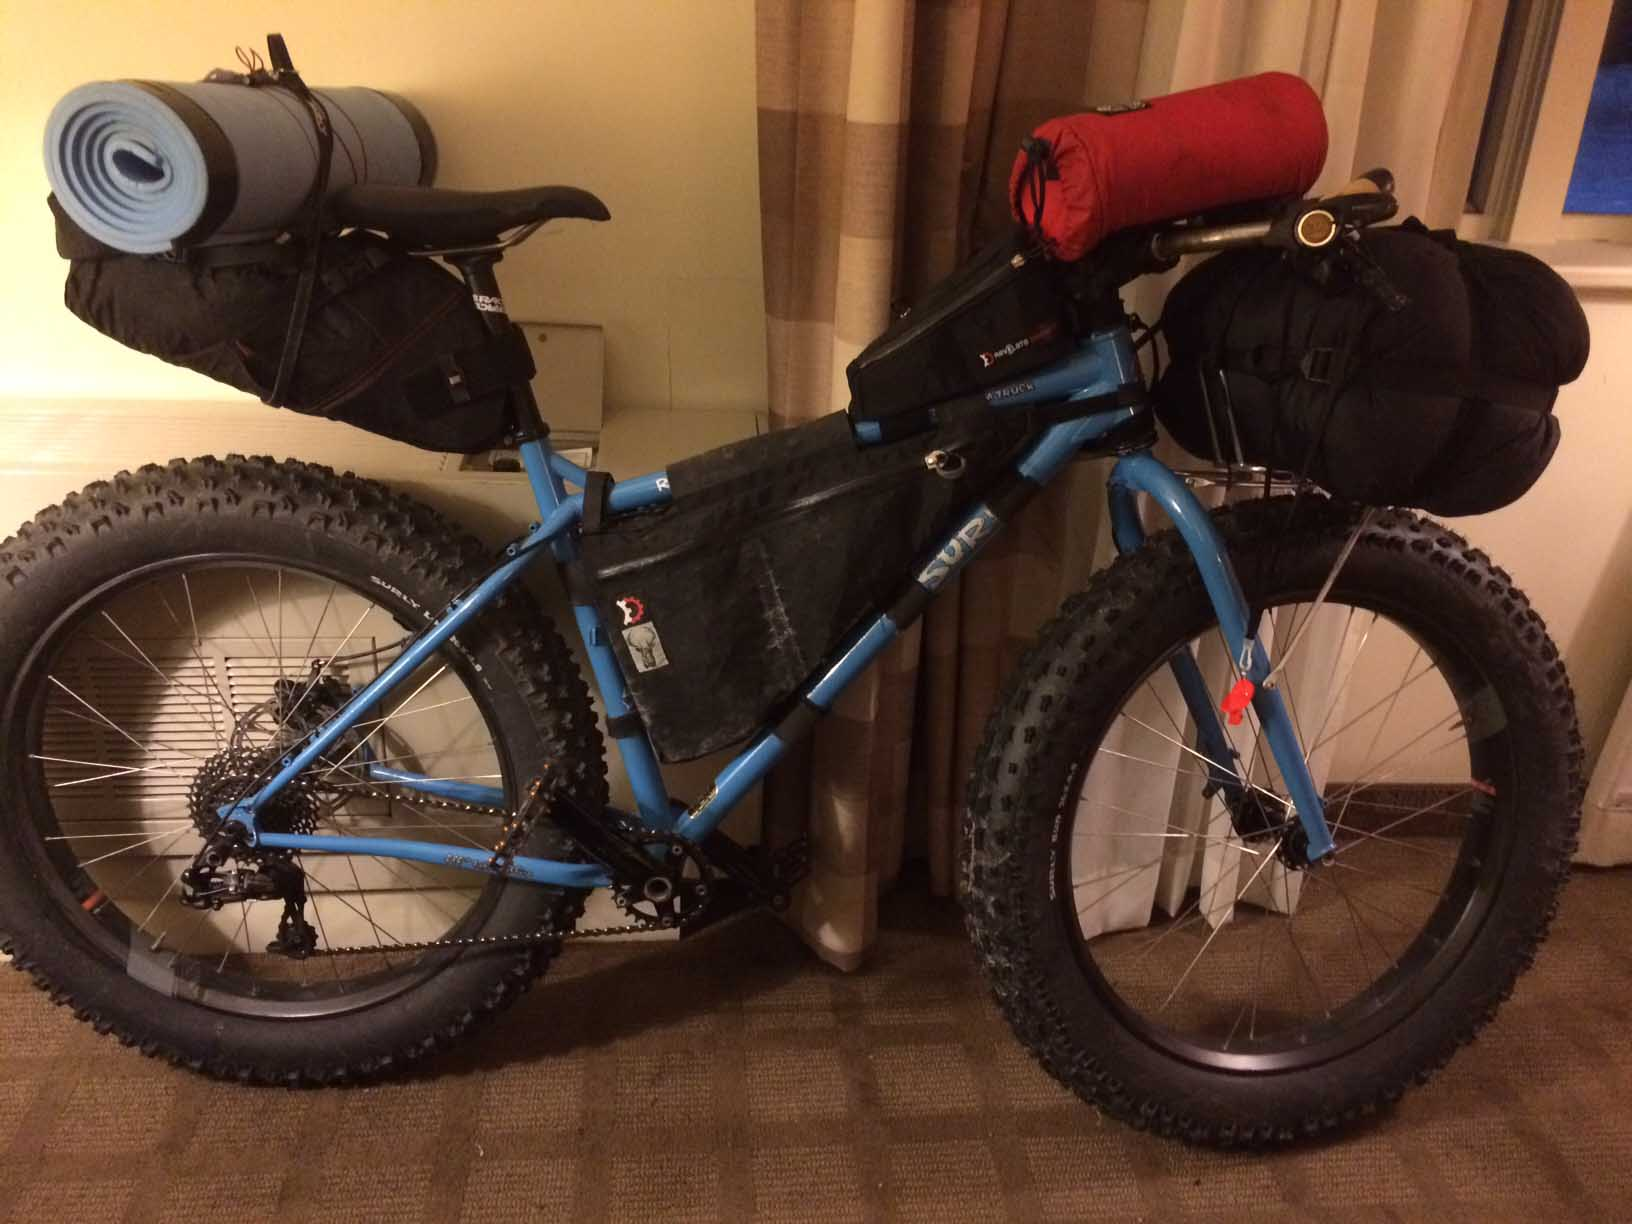 Right side view of a blue Surly Ice Cream Truck fat bike loaded with gear, against a room, against the wall